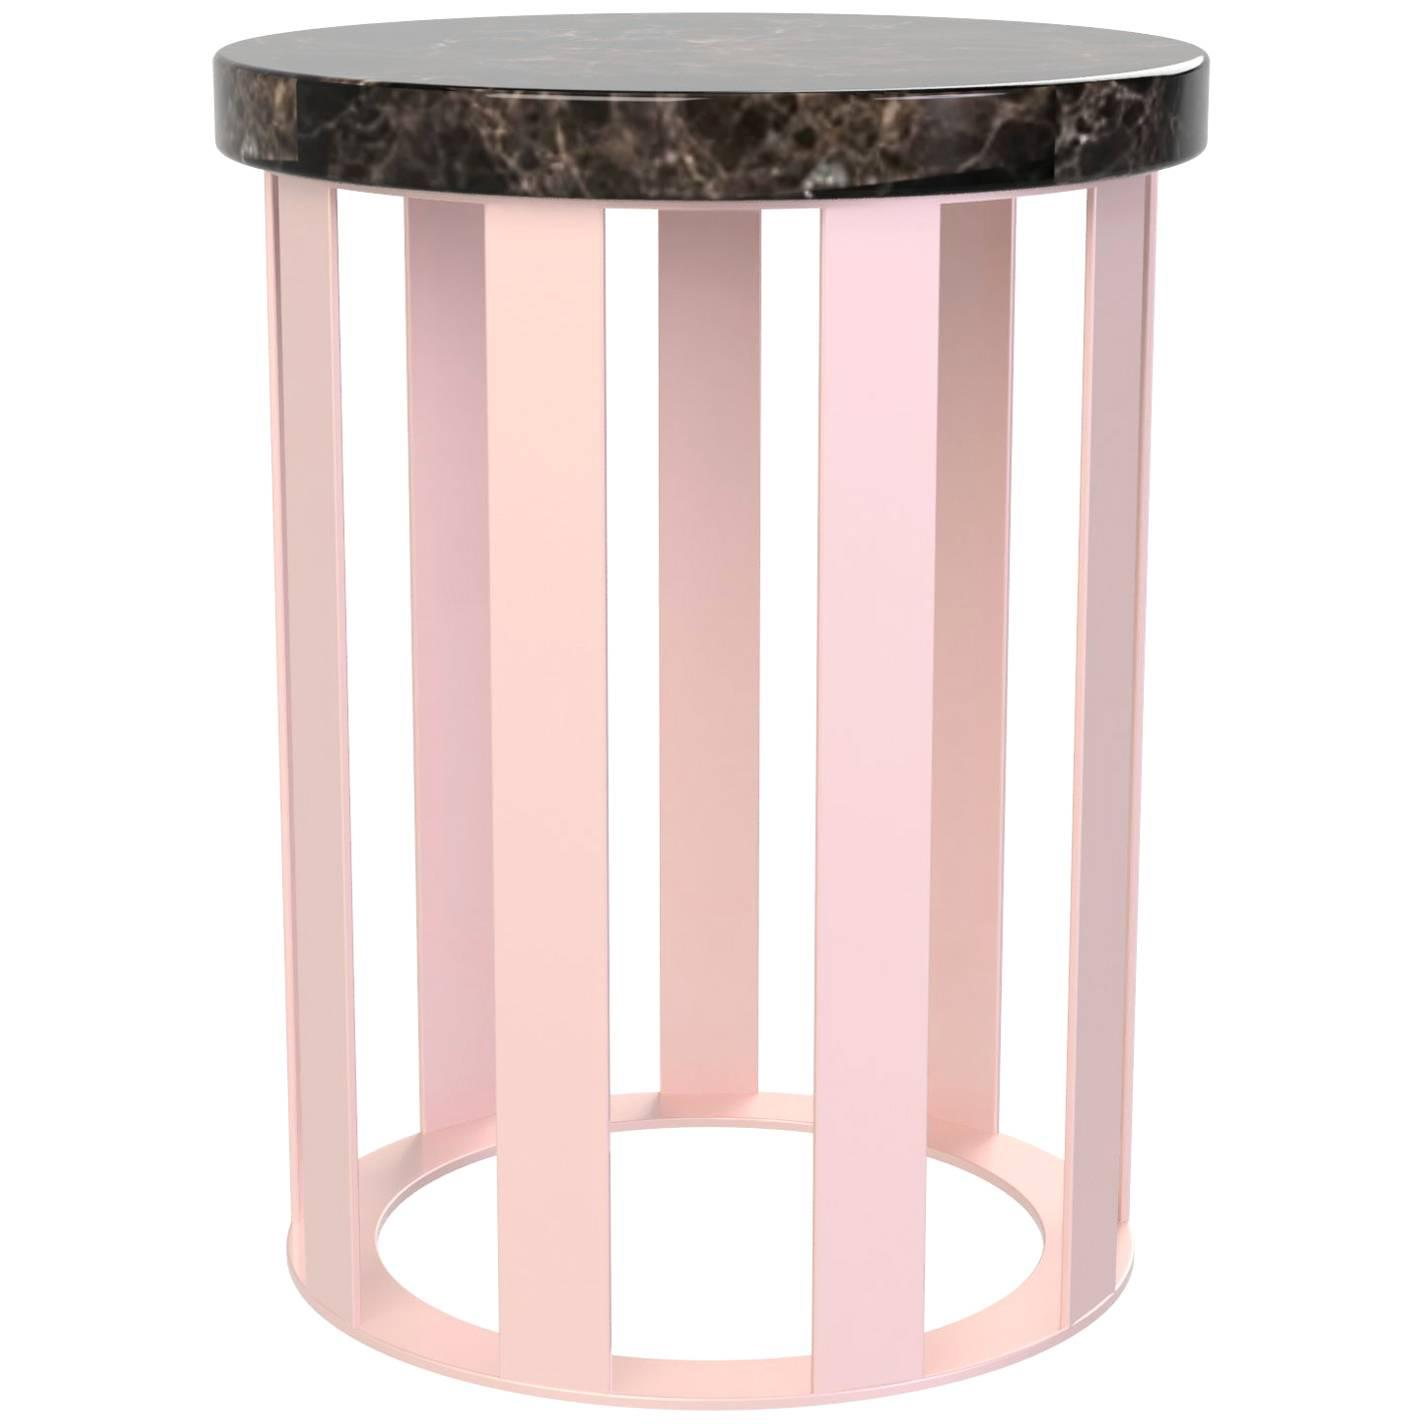 plaster side tables for master pink marble accent table legs coffee ballard bar stools half moon mirrored ikea bath end round glass top solid cherry wood long narrow sofa with